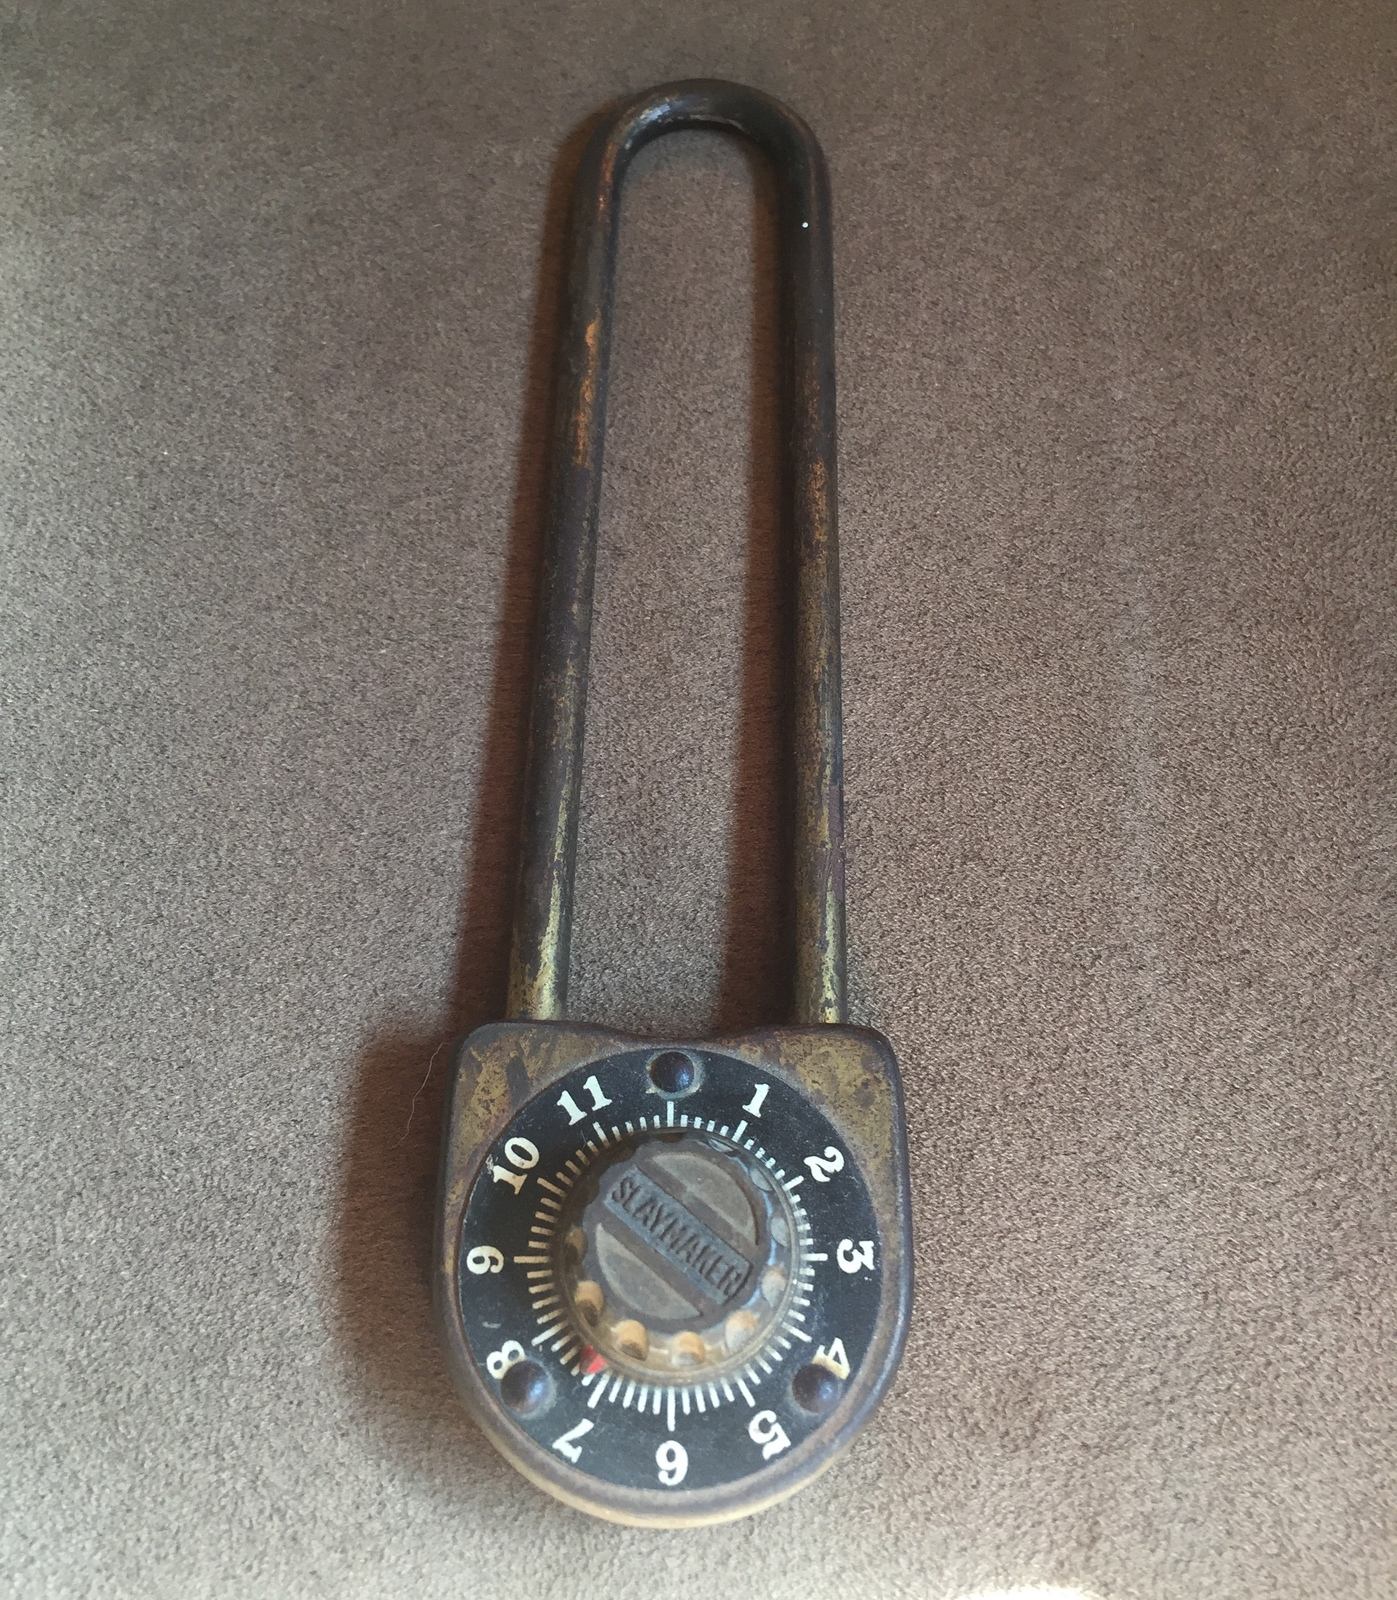 Vintage 40s Slaymaker long combination padlock